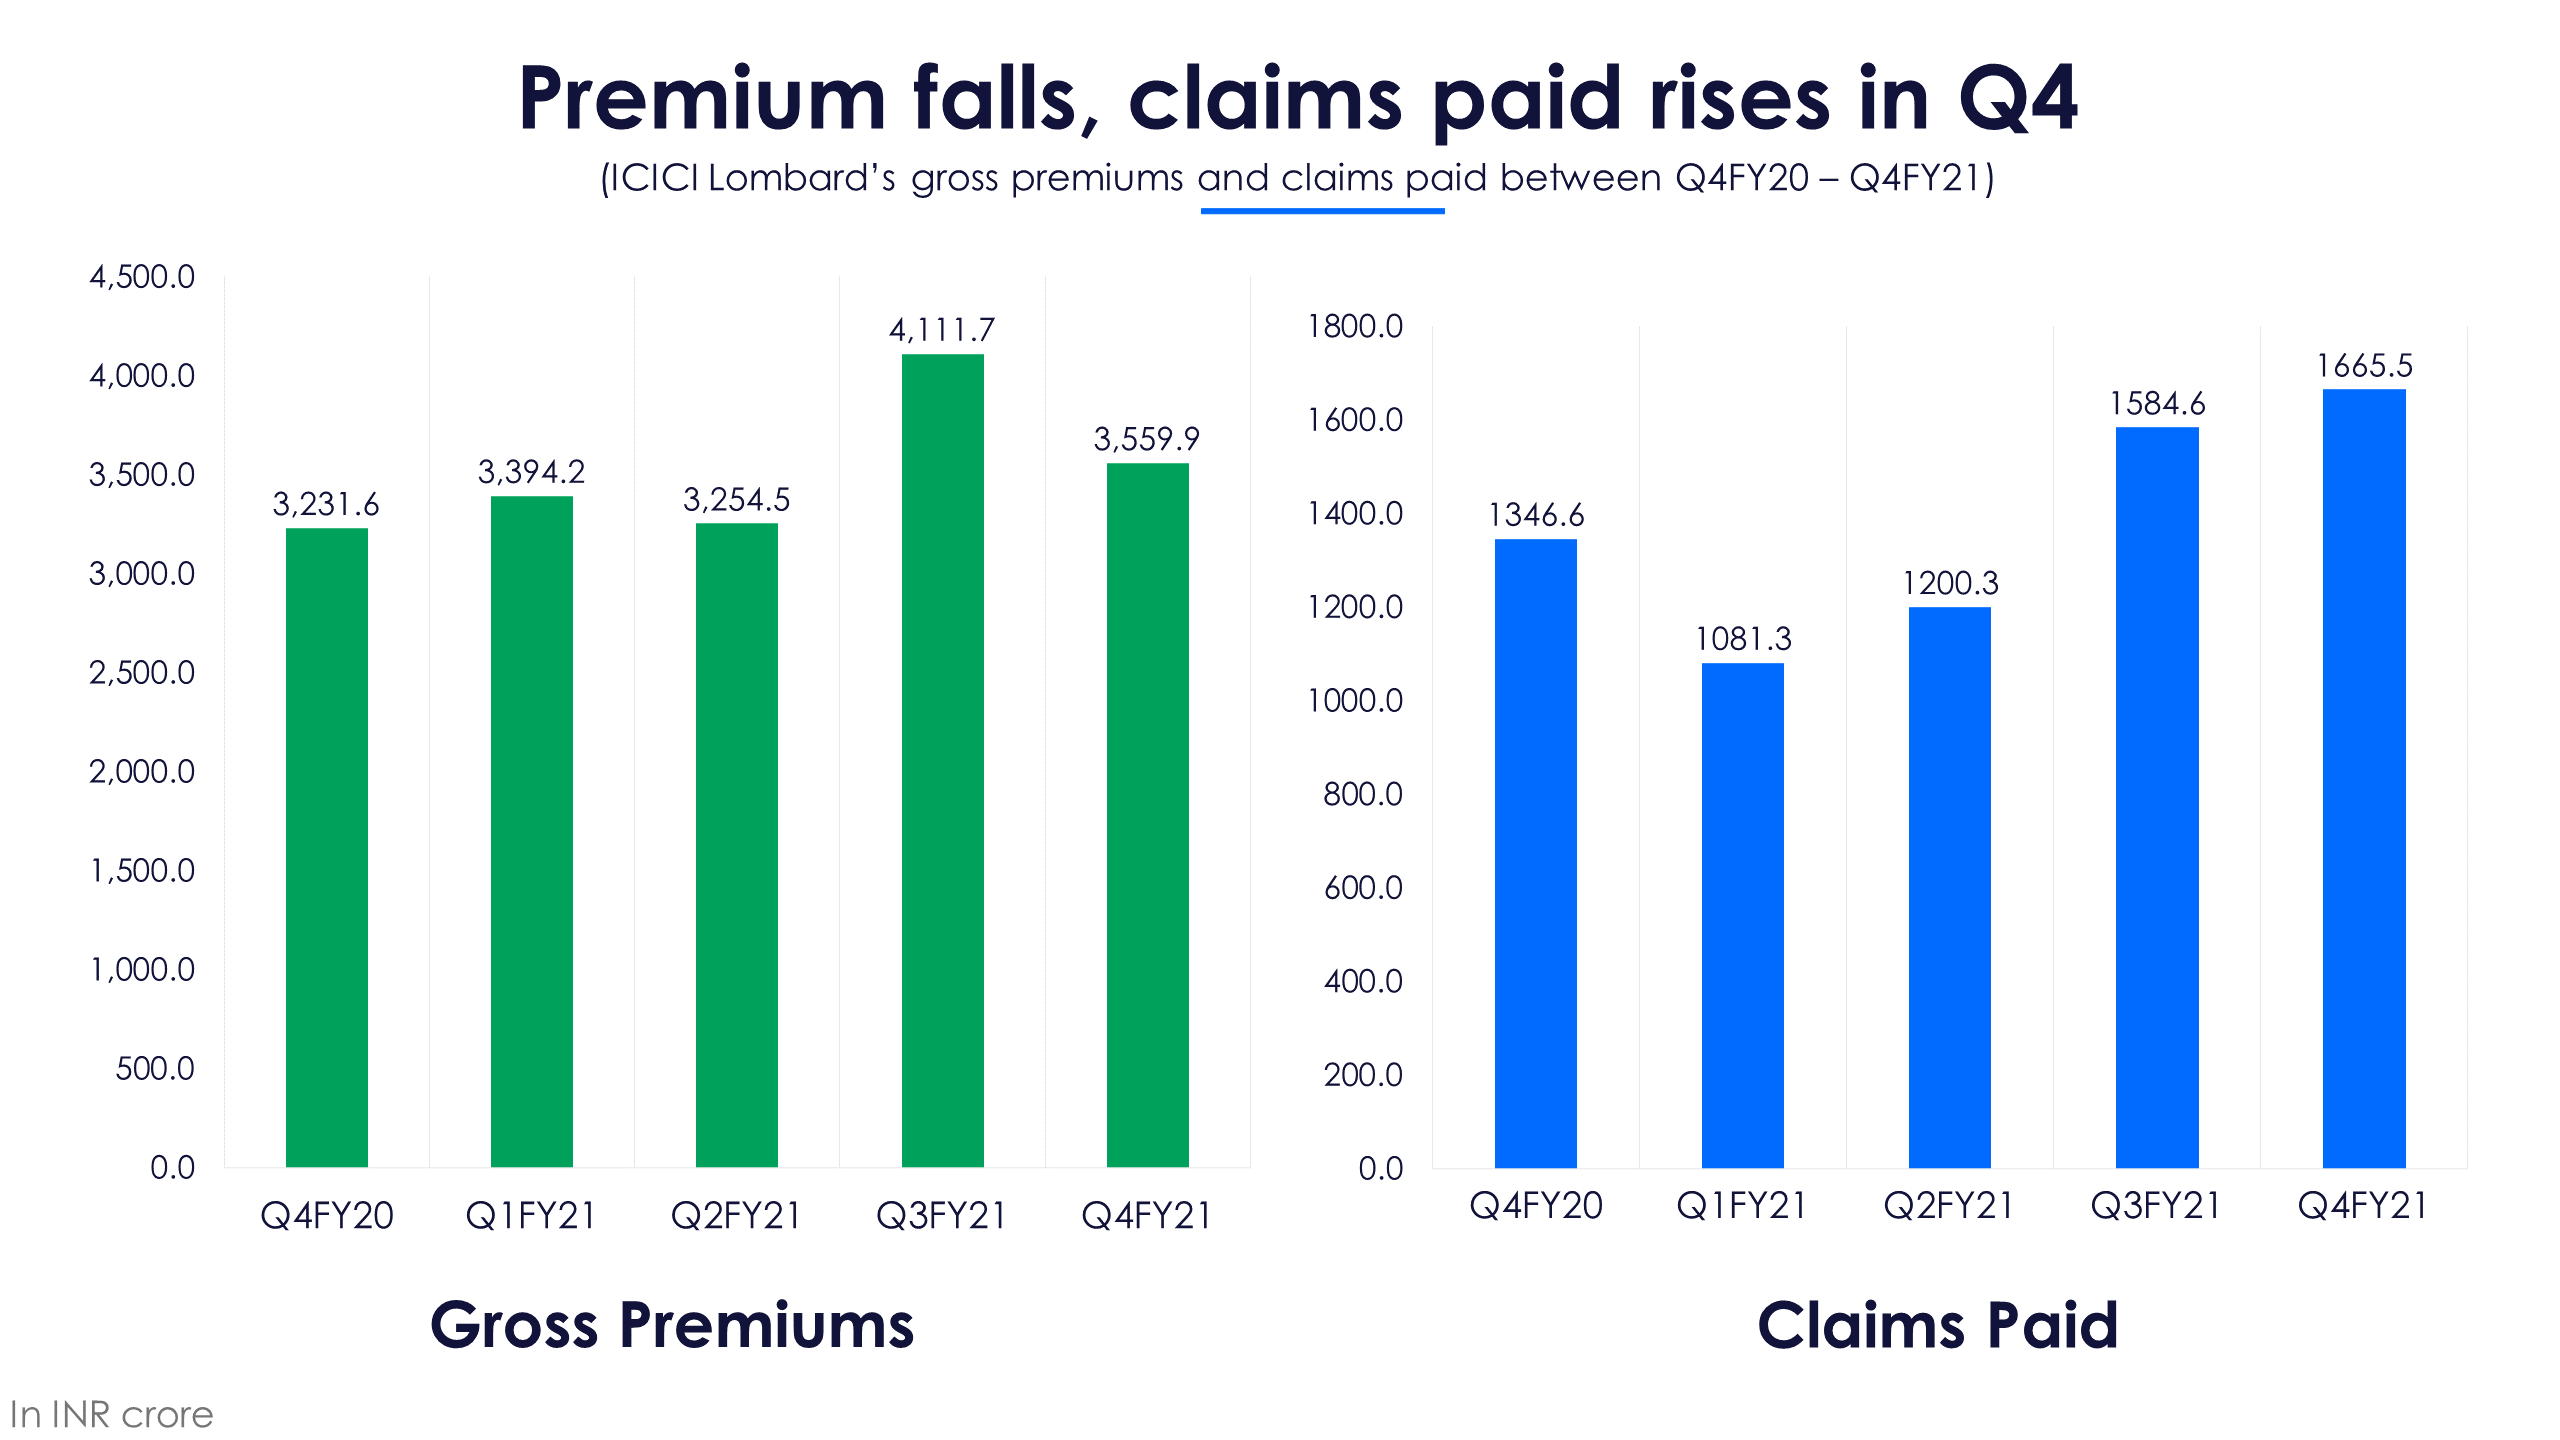 ICICI Lombard Premiums and Claims